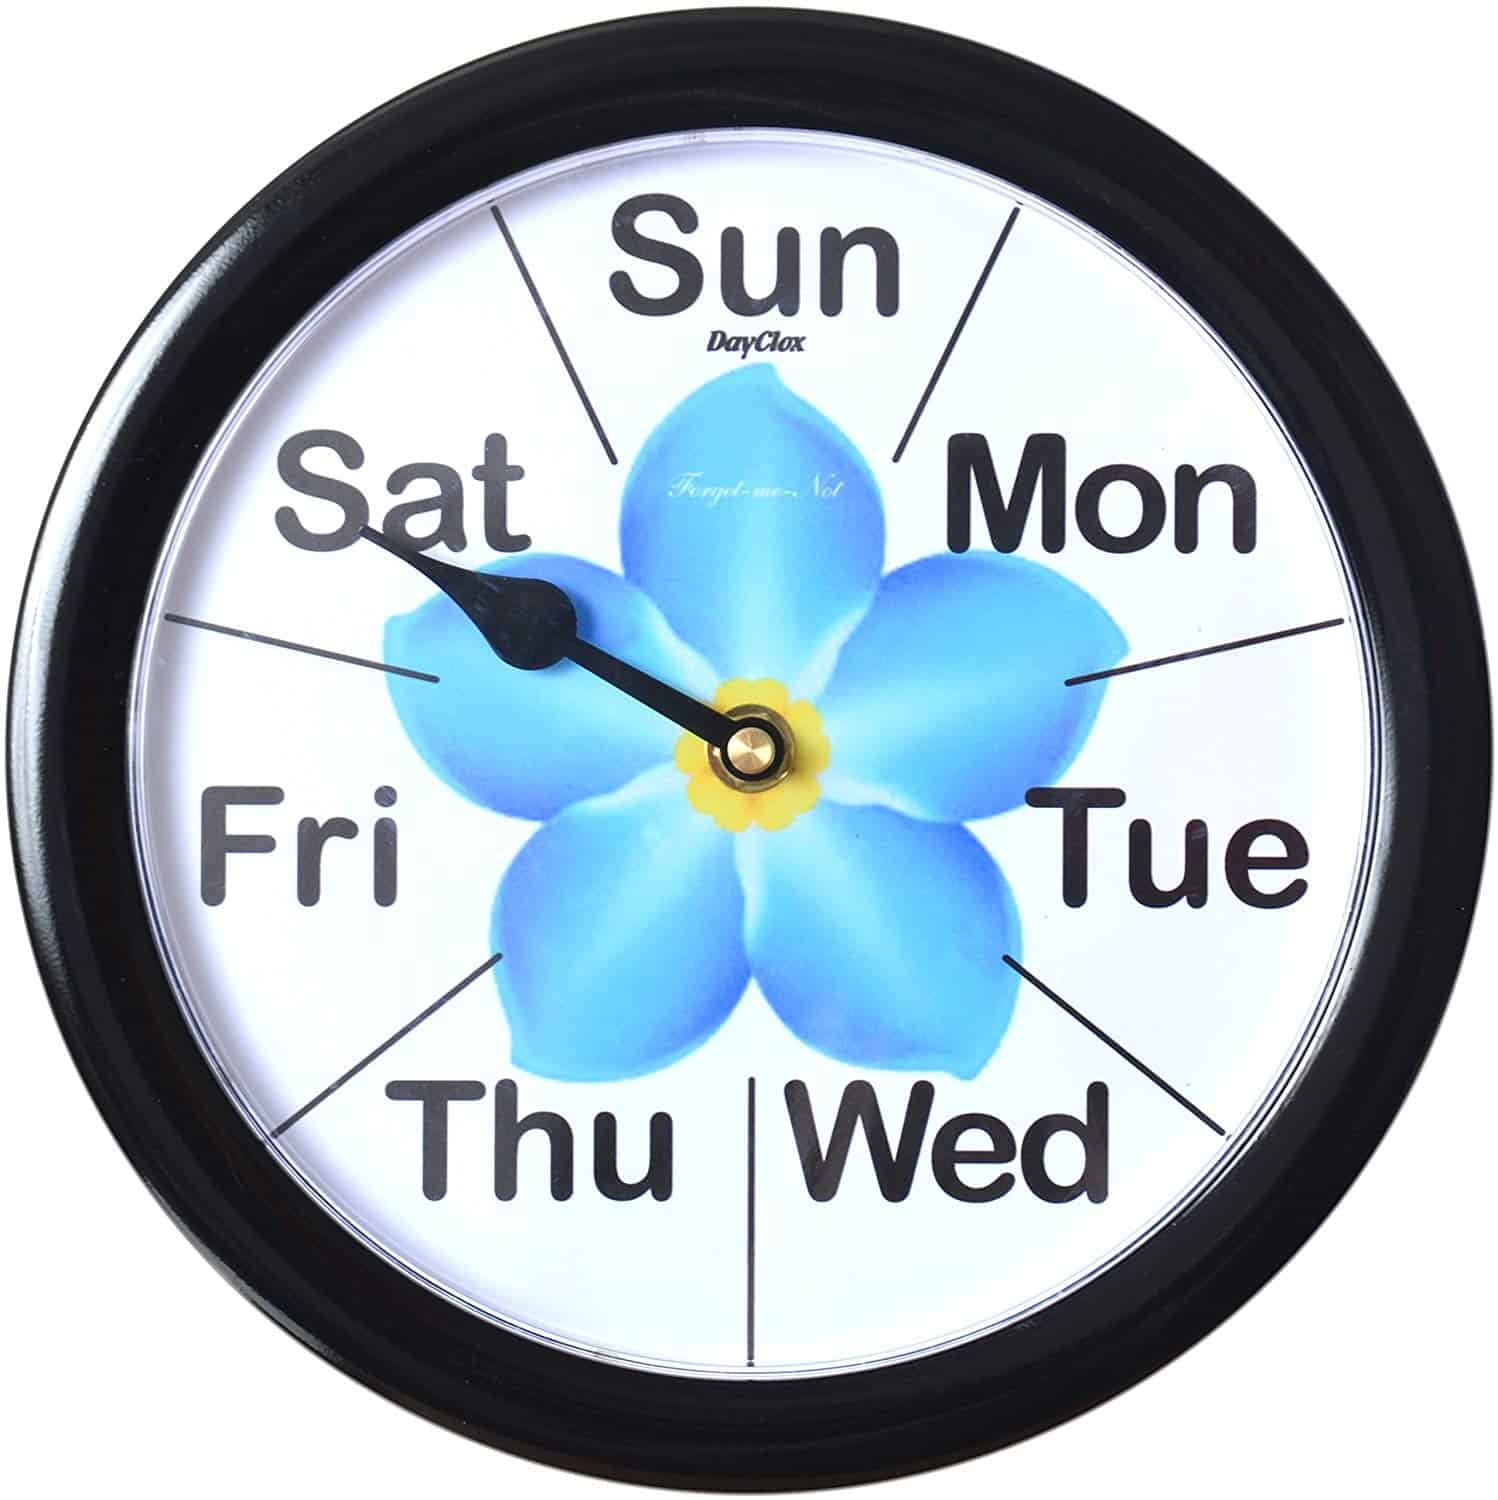 Forget-Me-Not Day Clock